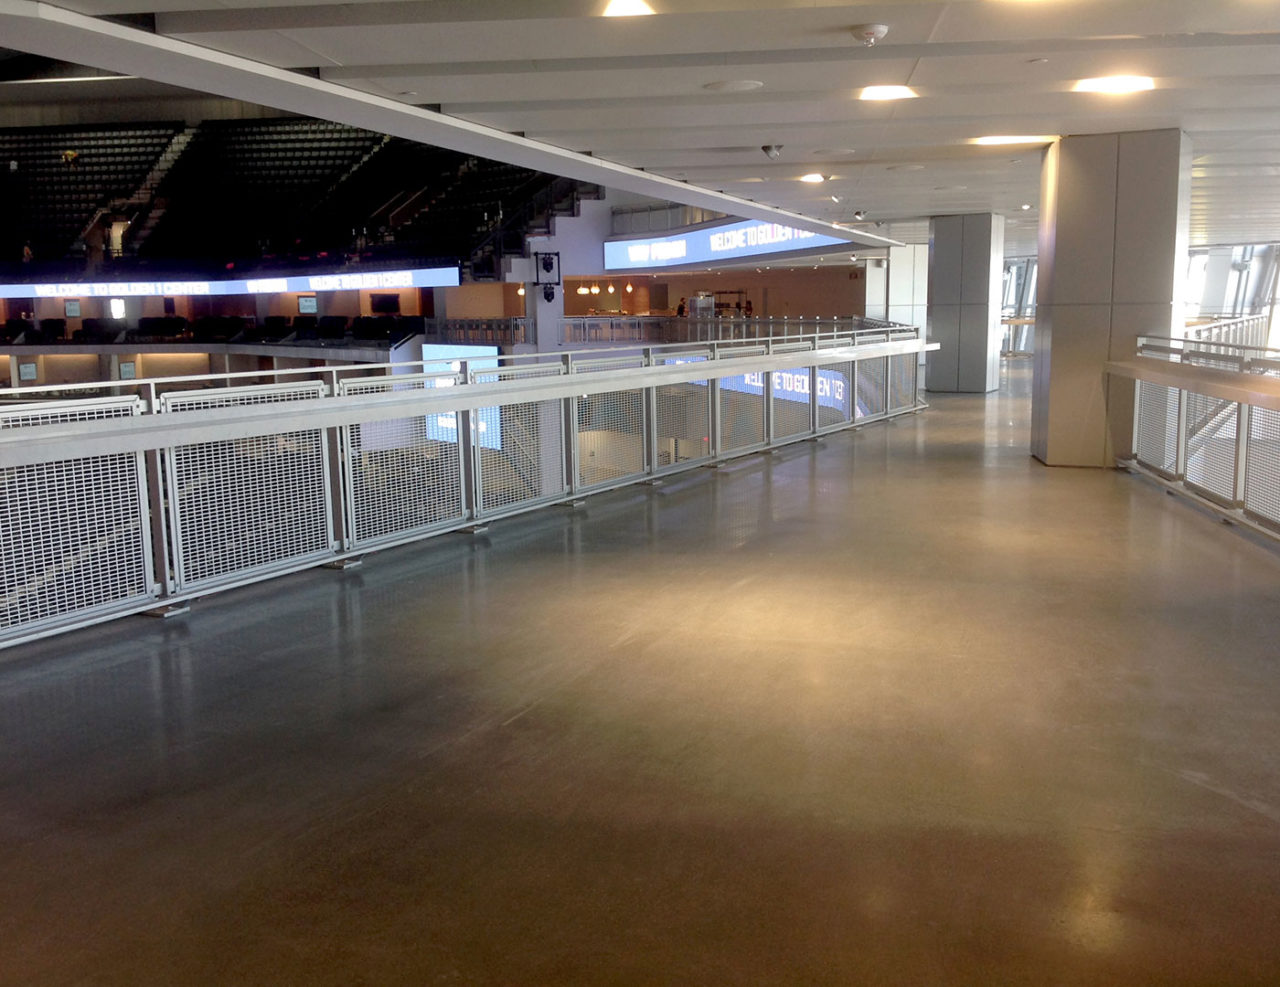 Golden 1 Center aluminum mesh railing on bridge